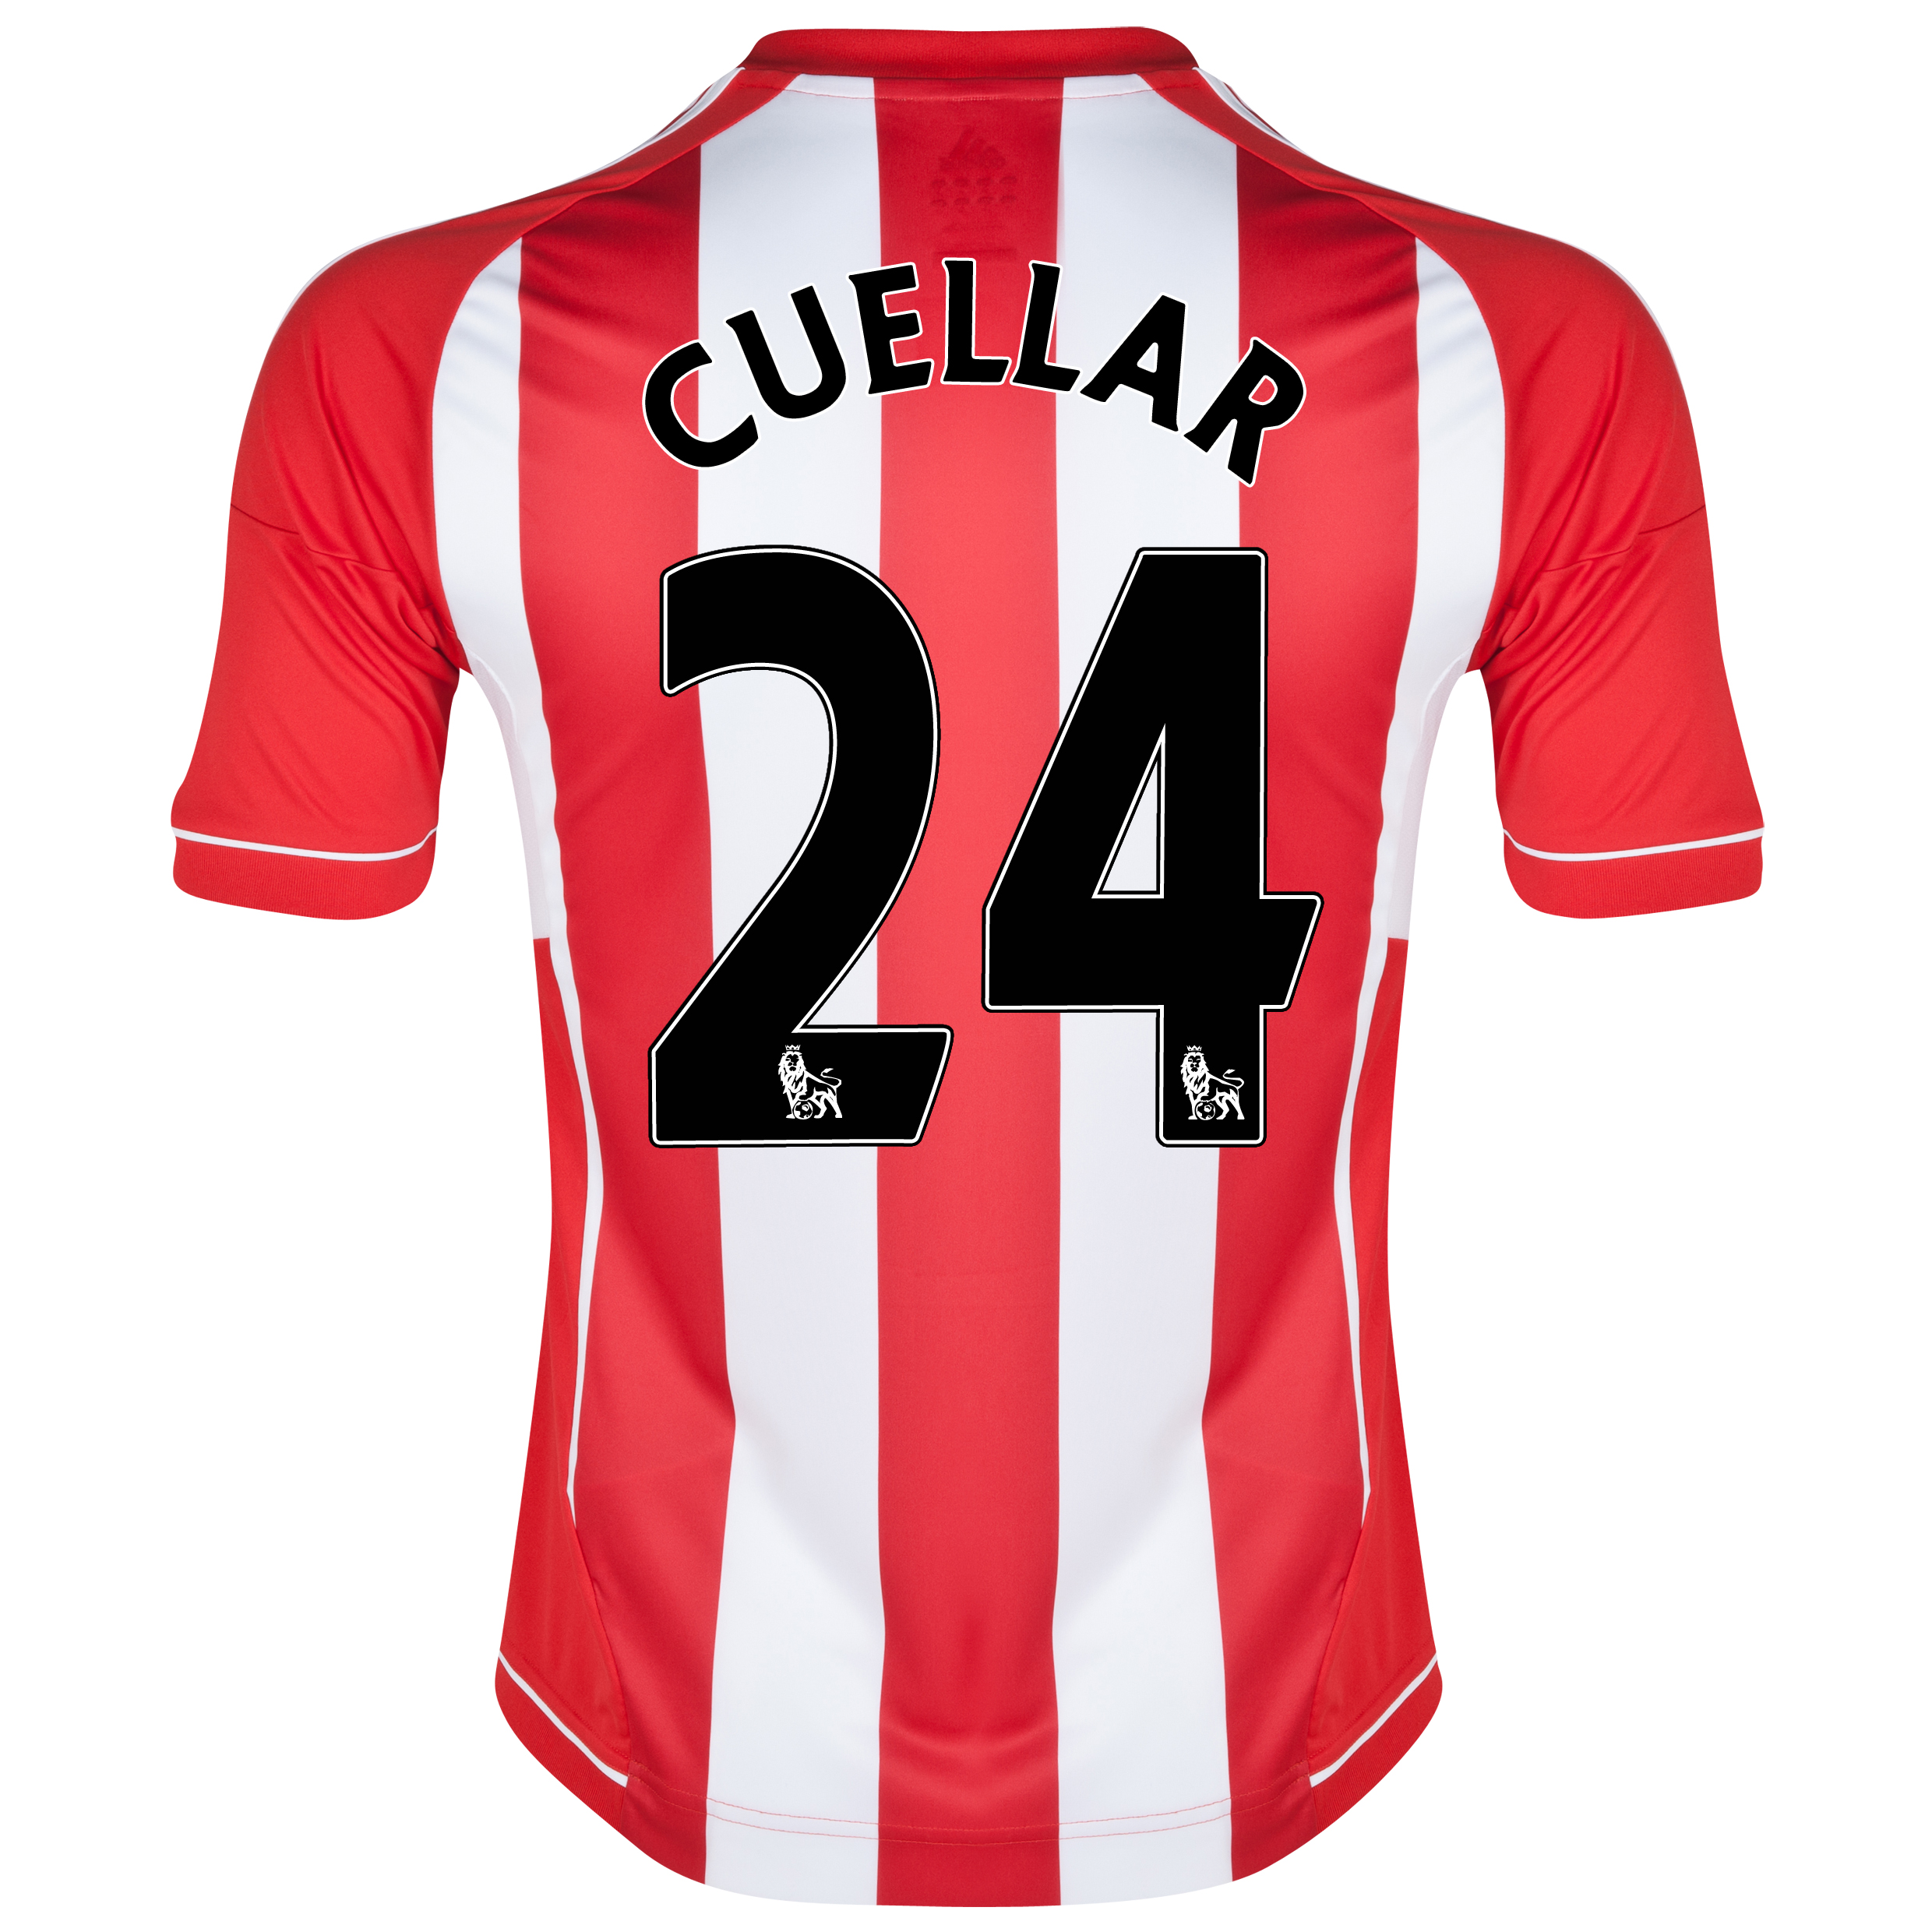 Sunderland Home Shirt 2012/13 with Cuellar 24 printing